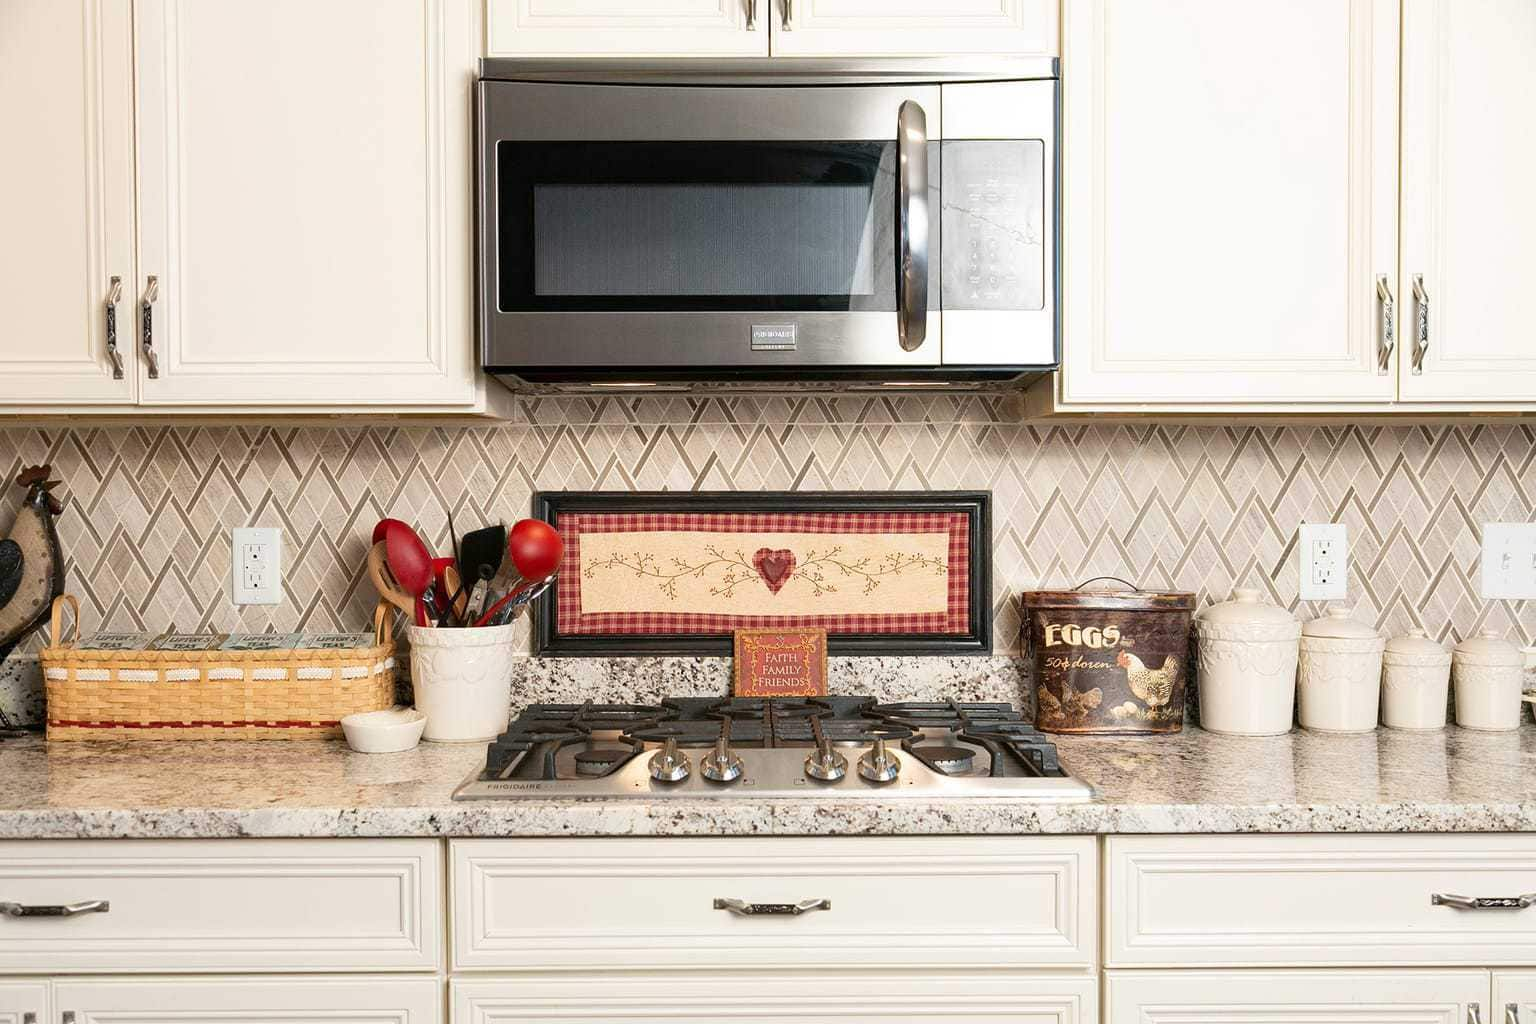 Kitchen Backsplash Ideas With White Cabinets Kitchen Tile Backsplash Ideas That Are Easy And Inexpensive